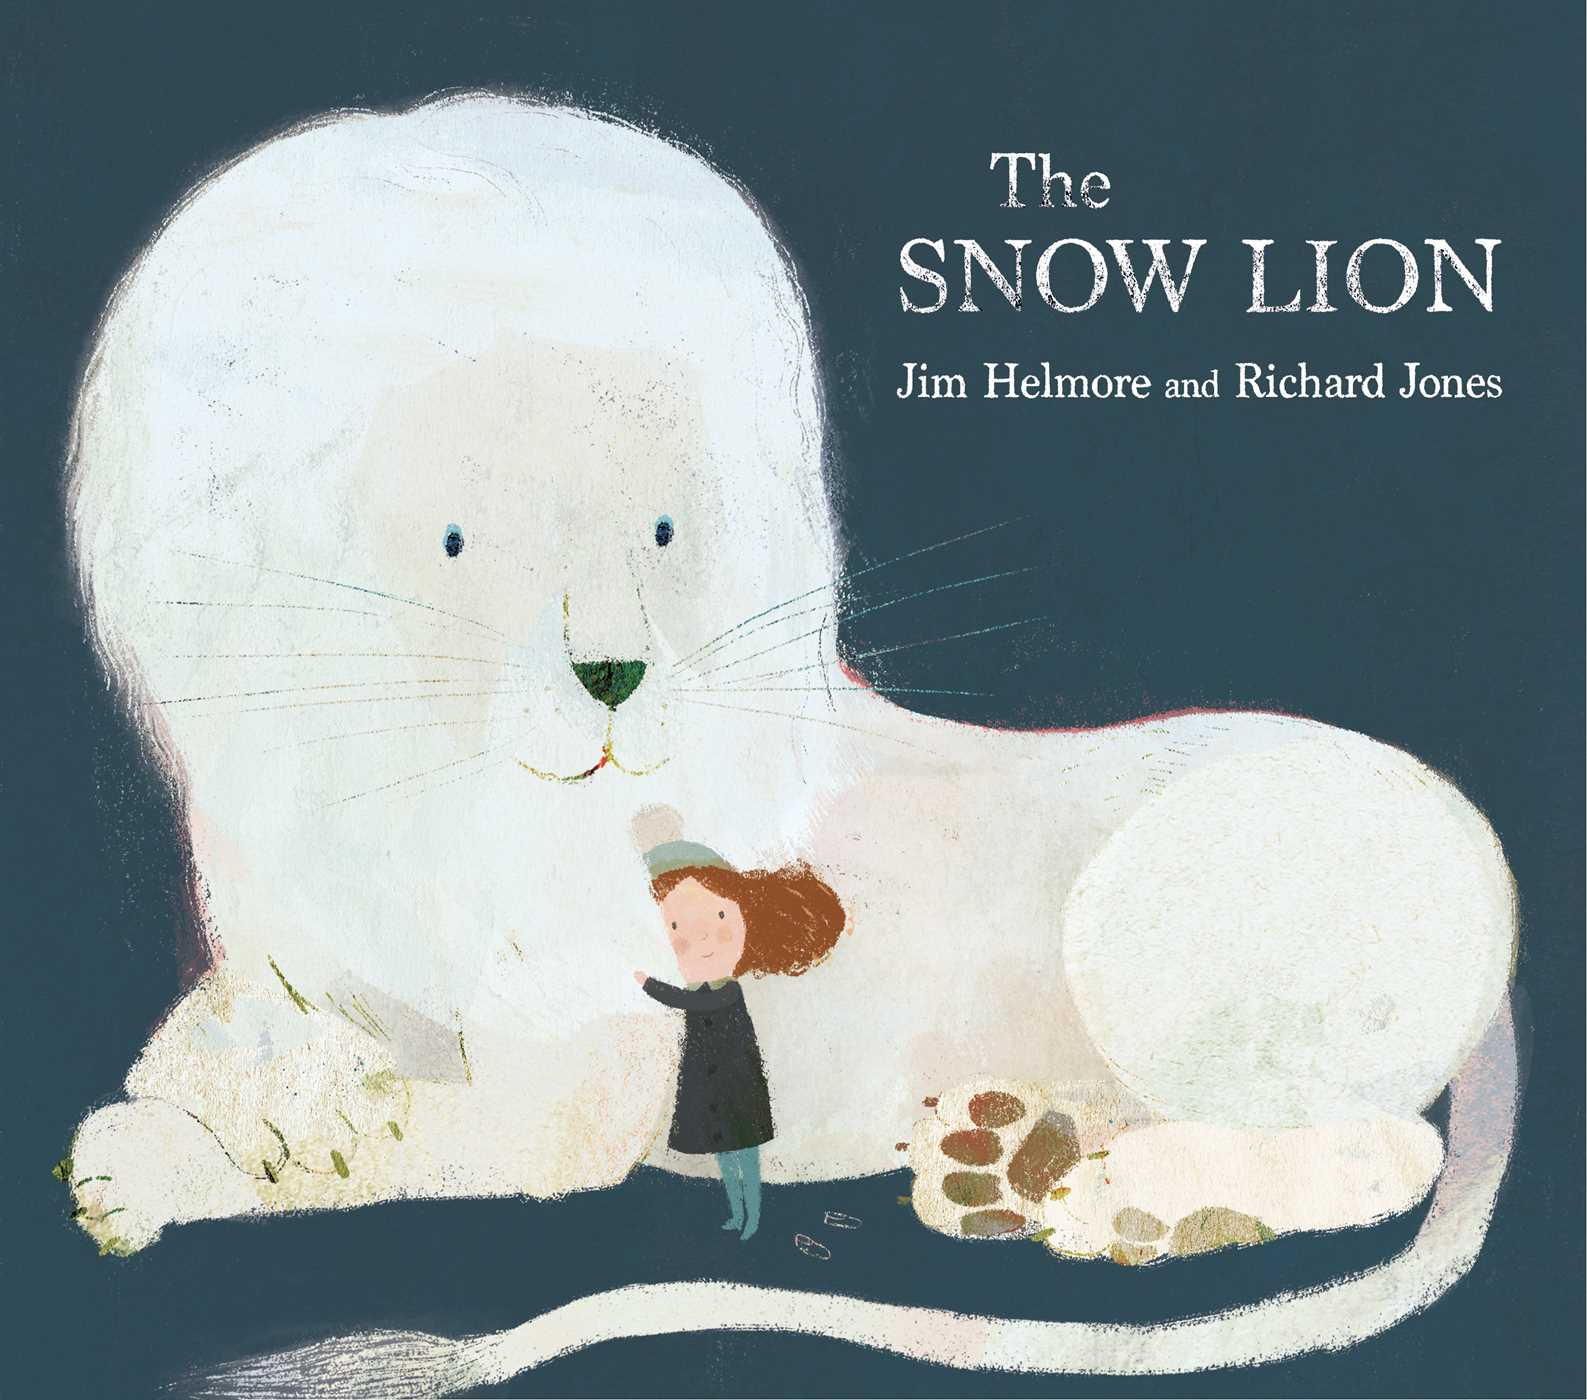 The snow lion 9781471162237 hr